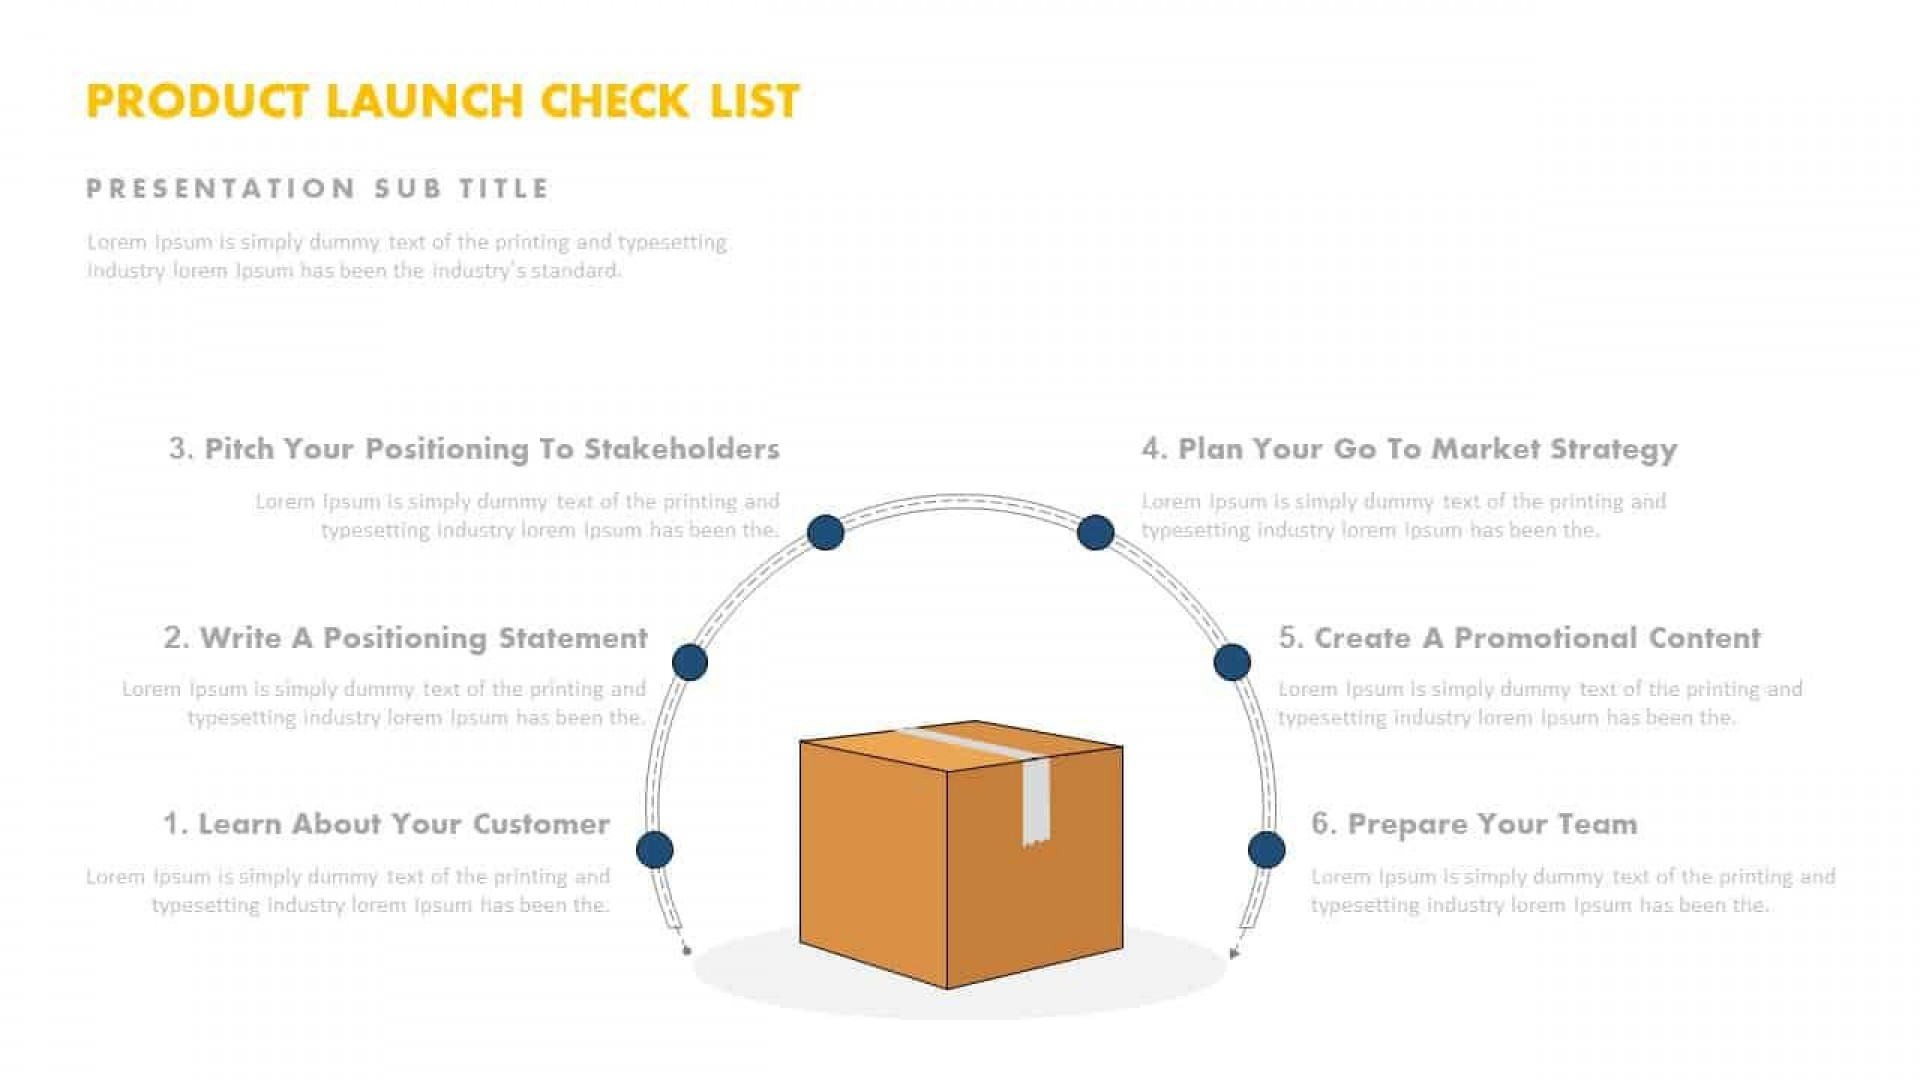 005 Phenomenal Free Product Launch Plan Template Ppt Sample 1920